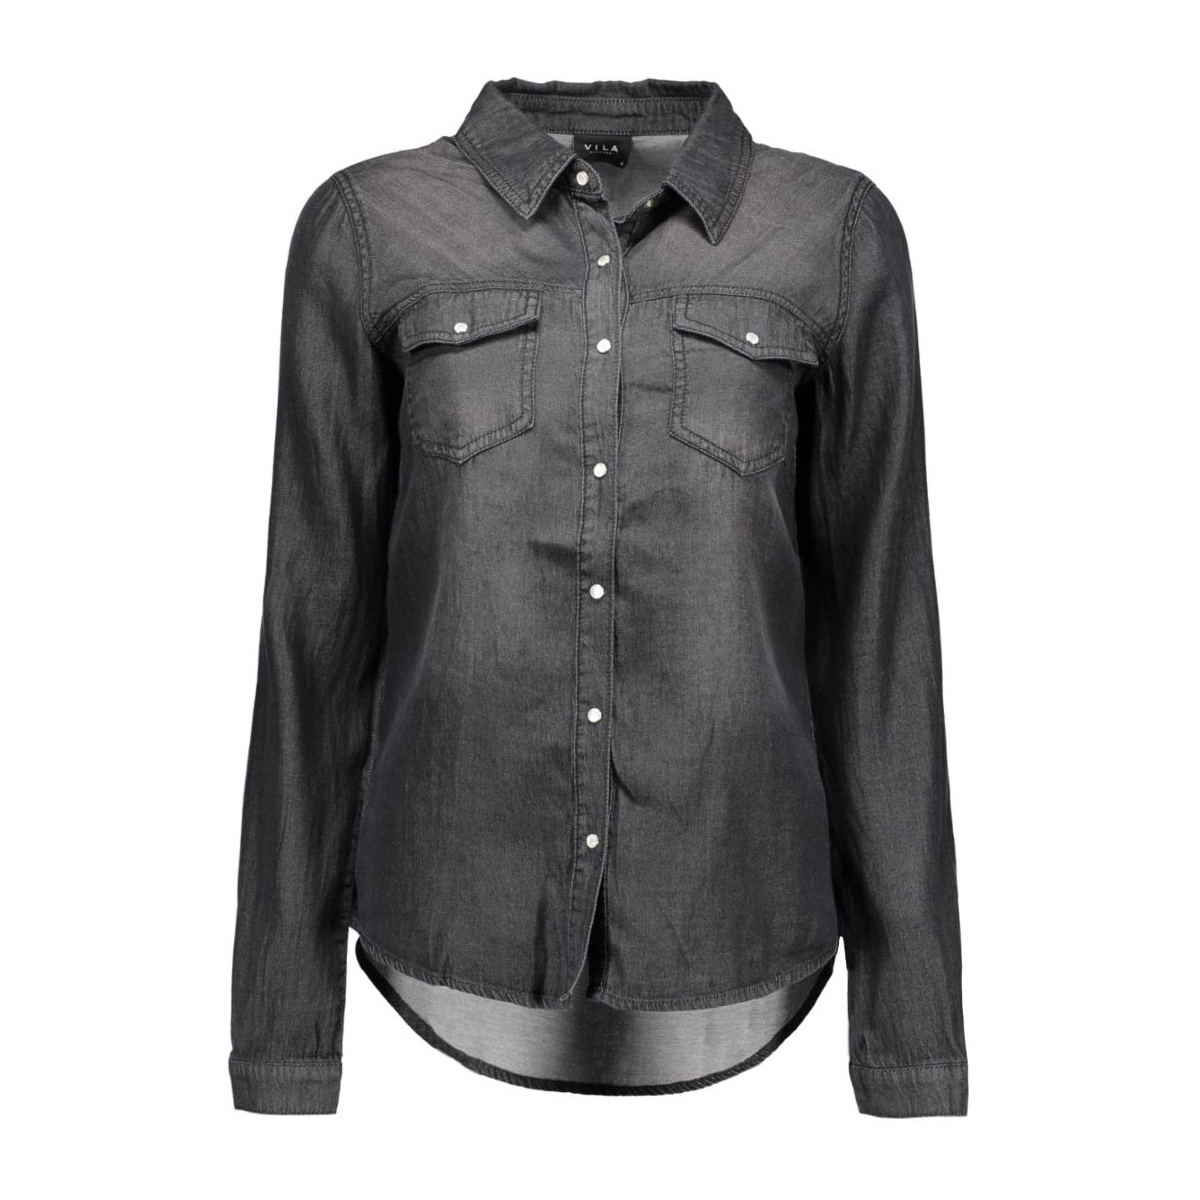 vibista denim shirt-noos 14033008 vila blouse black